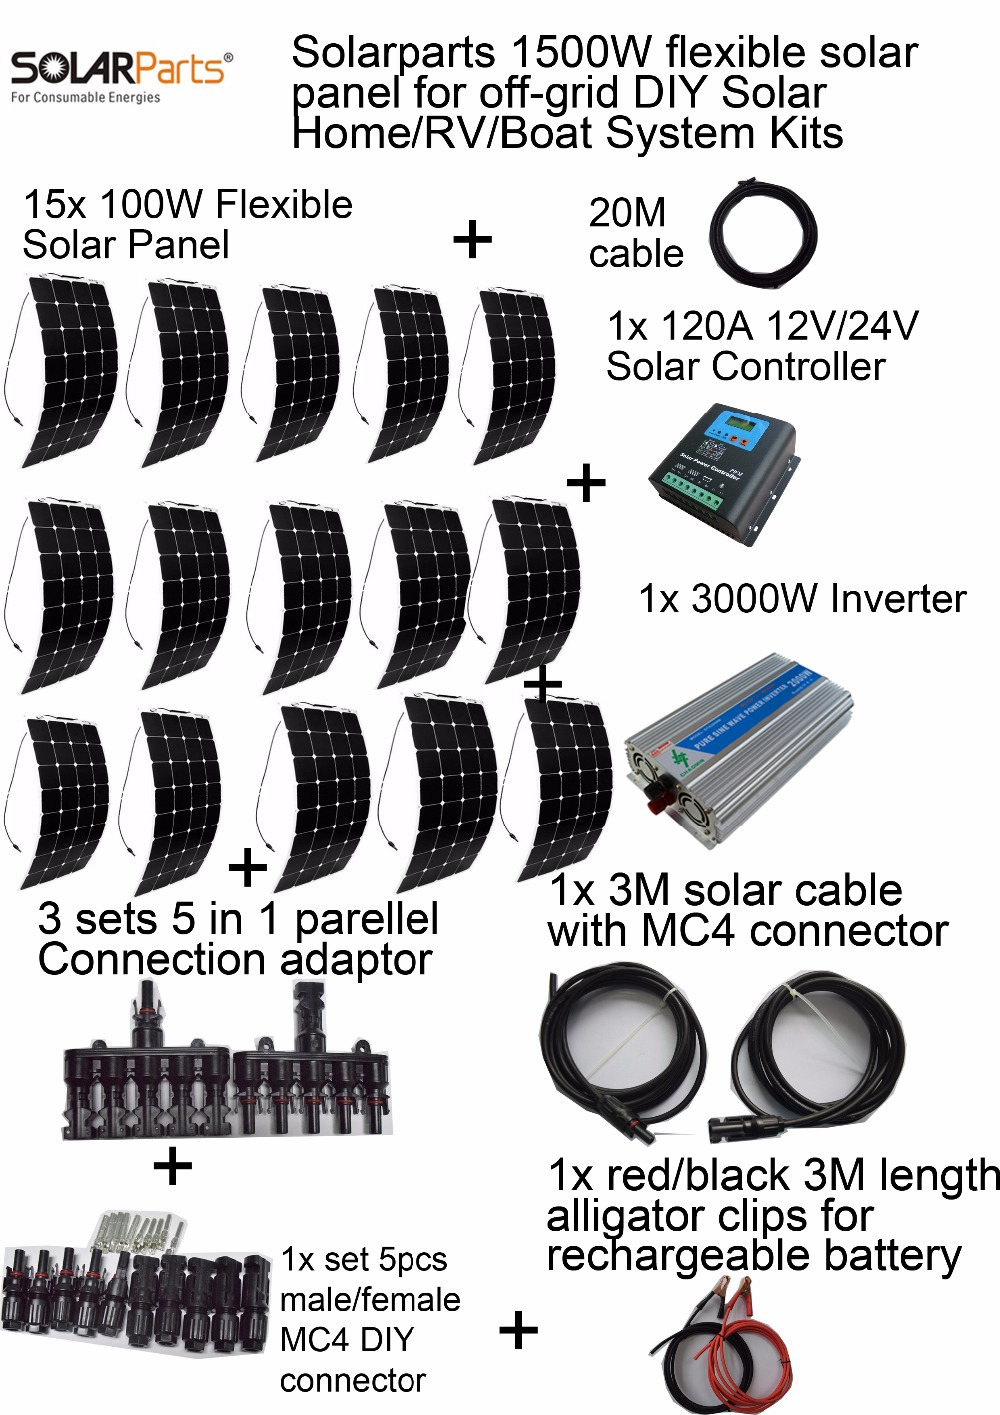 Solarparts 1500W off-grid Solar System KITS flexible solar panel +controller+inverter+cable+adaptor for RV/Marine/Camping/Home . solarparts 100w diy rv marine kits solar system1x100w flexible solar panel 12v 1 x10a 12v 24v solar controller set cables cheap